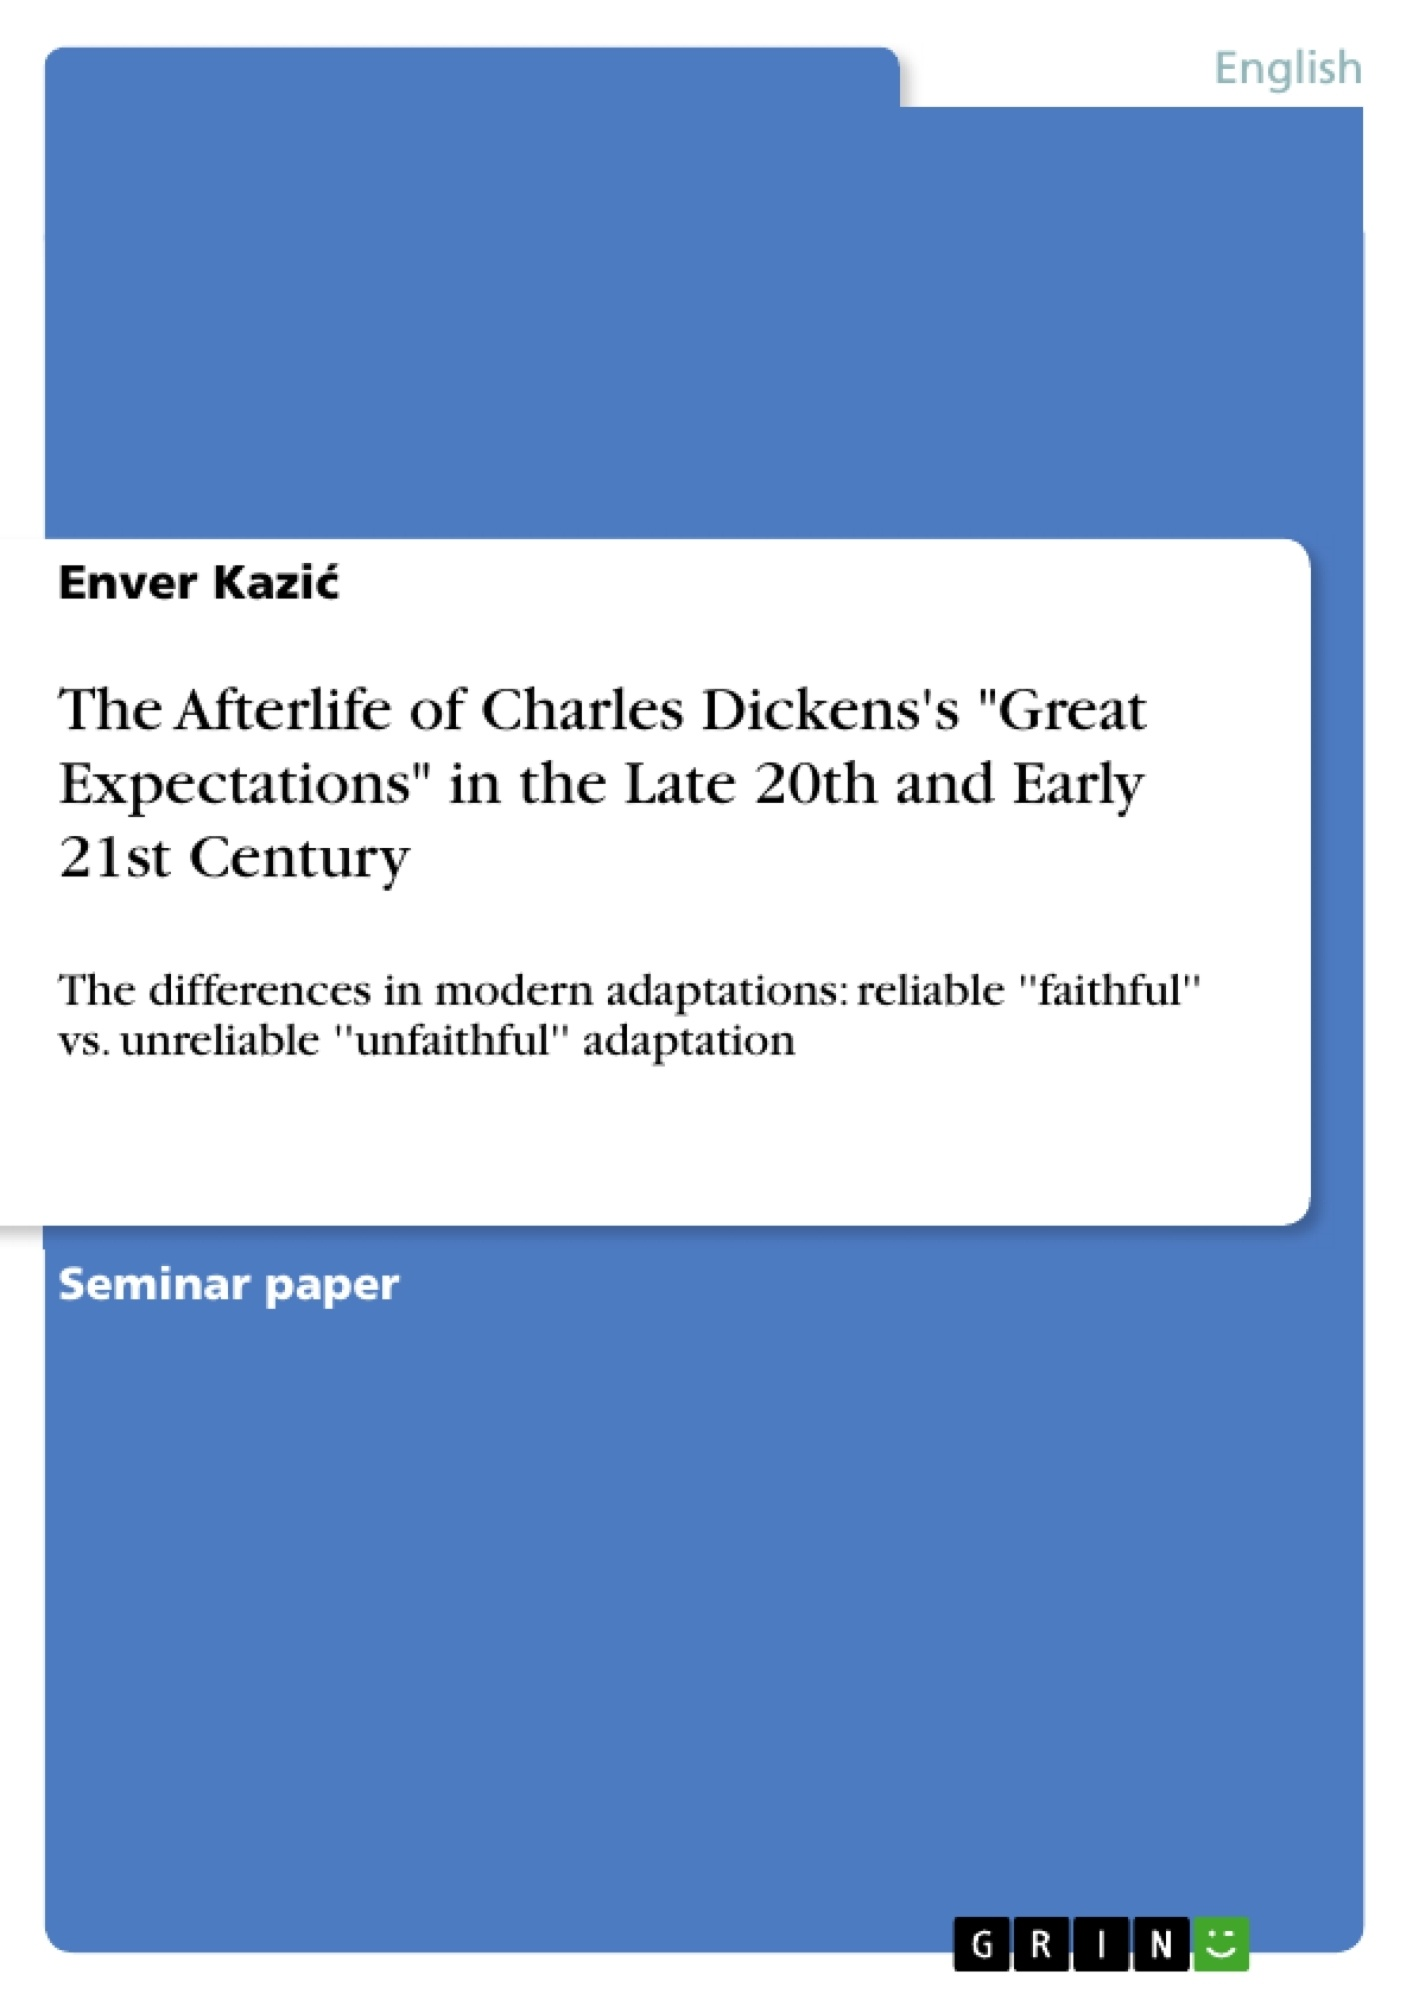 """Title: The Afterlife of Charles Dickens's """"Great Expectations"""" in the Late 20th and Early 21st Century"""